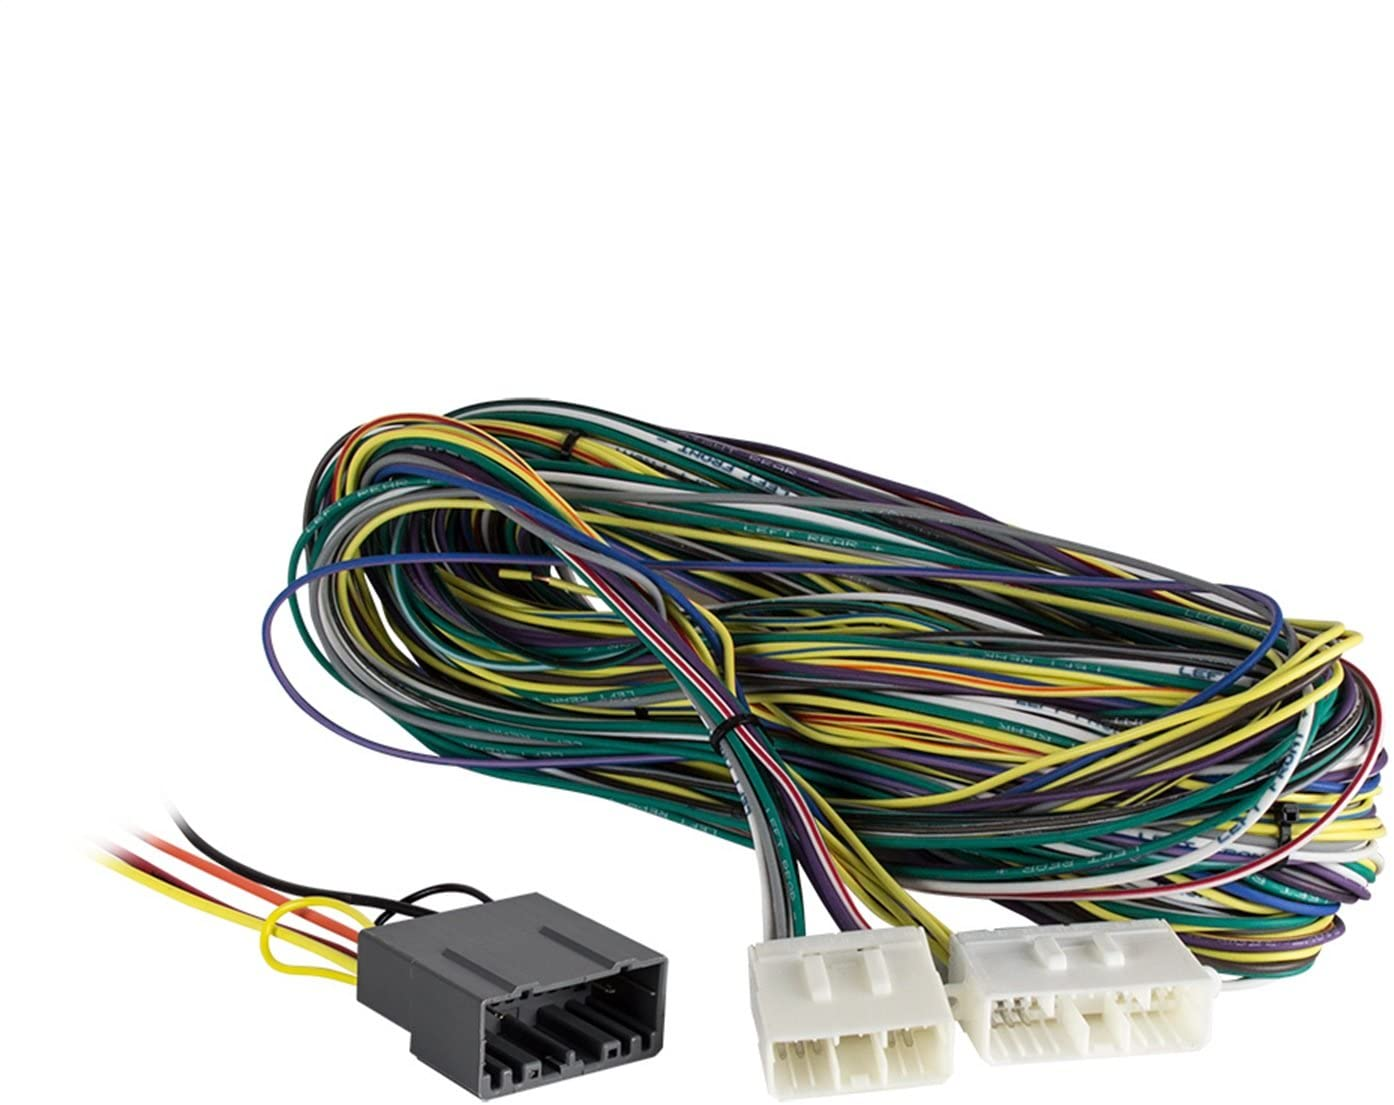 2005 Dodge Ram Infinity Stereo Wiring from images-na.ssl-images-amazon.com